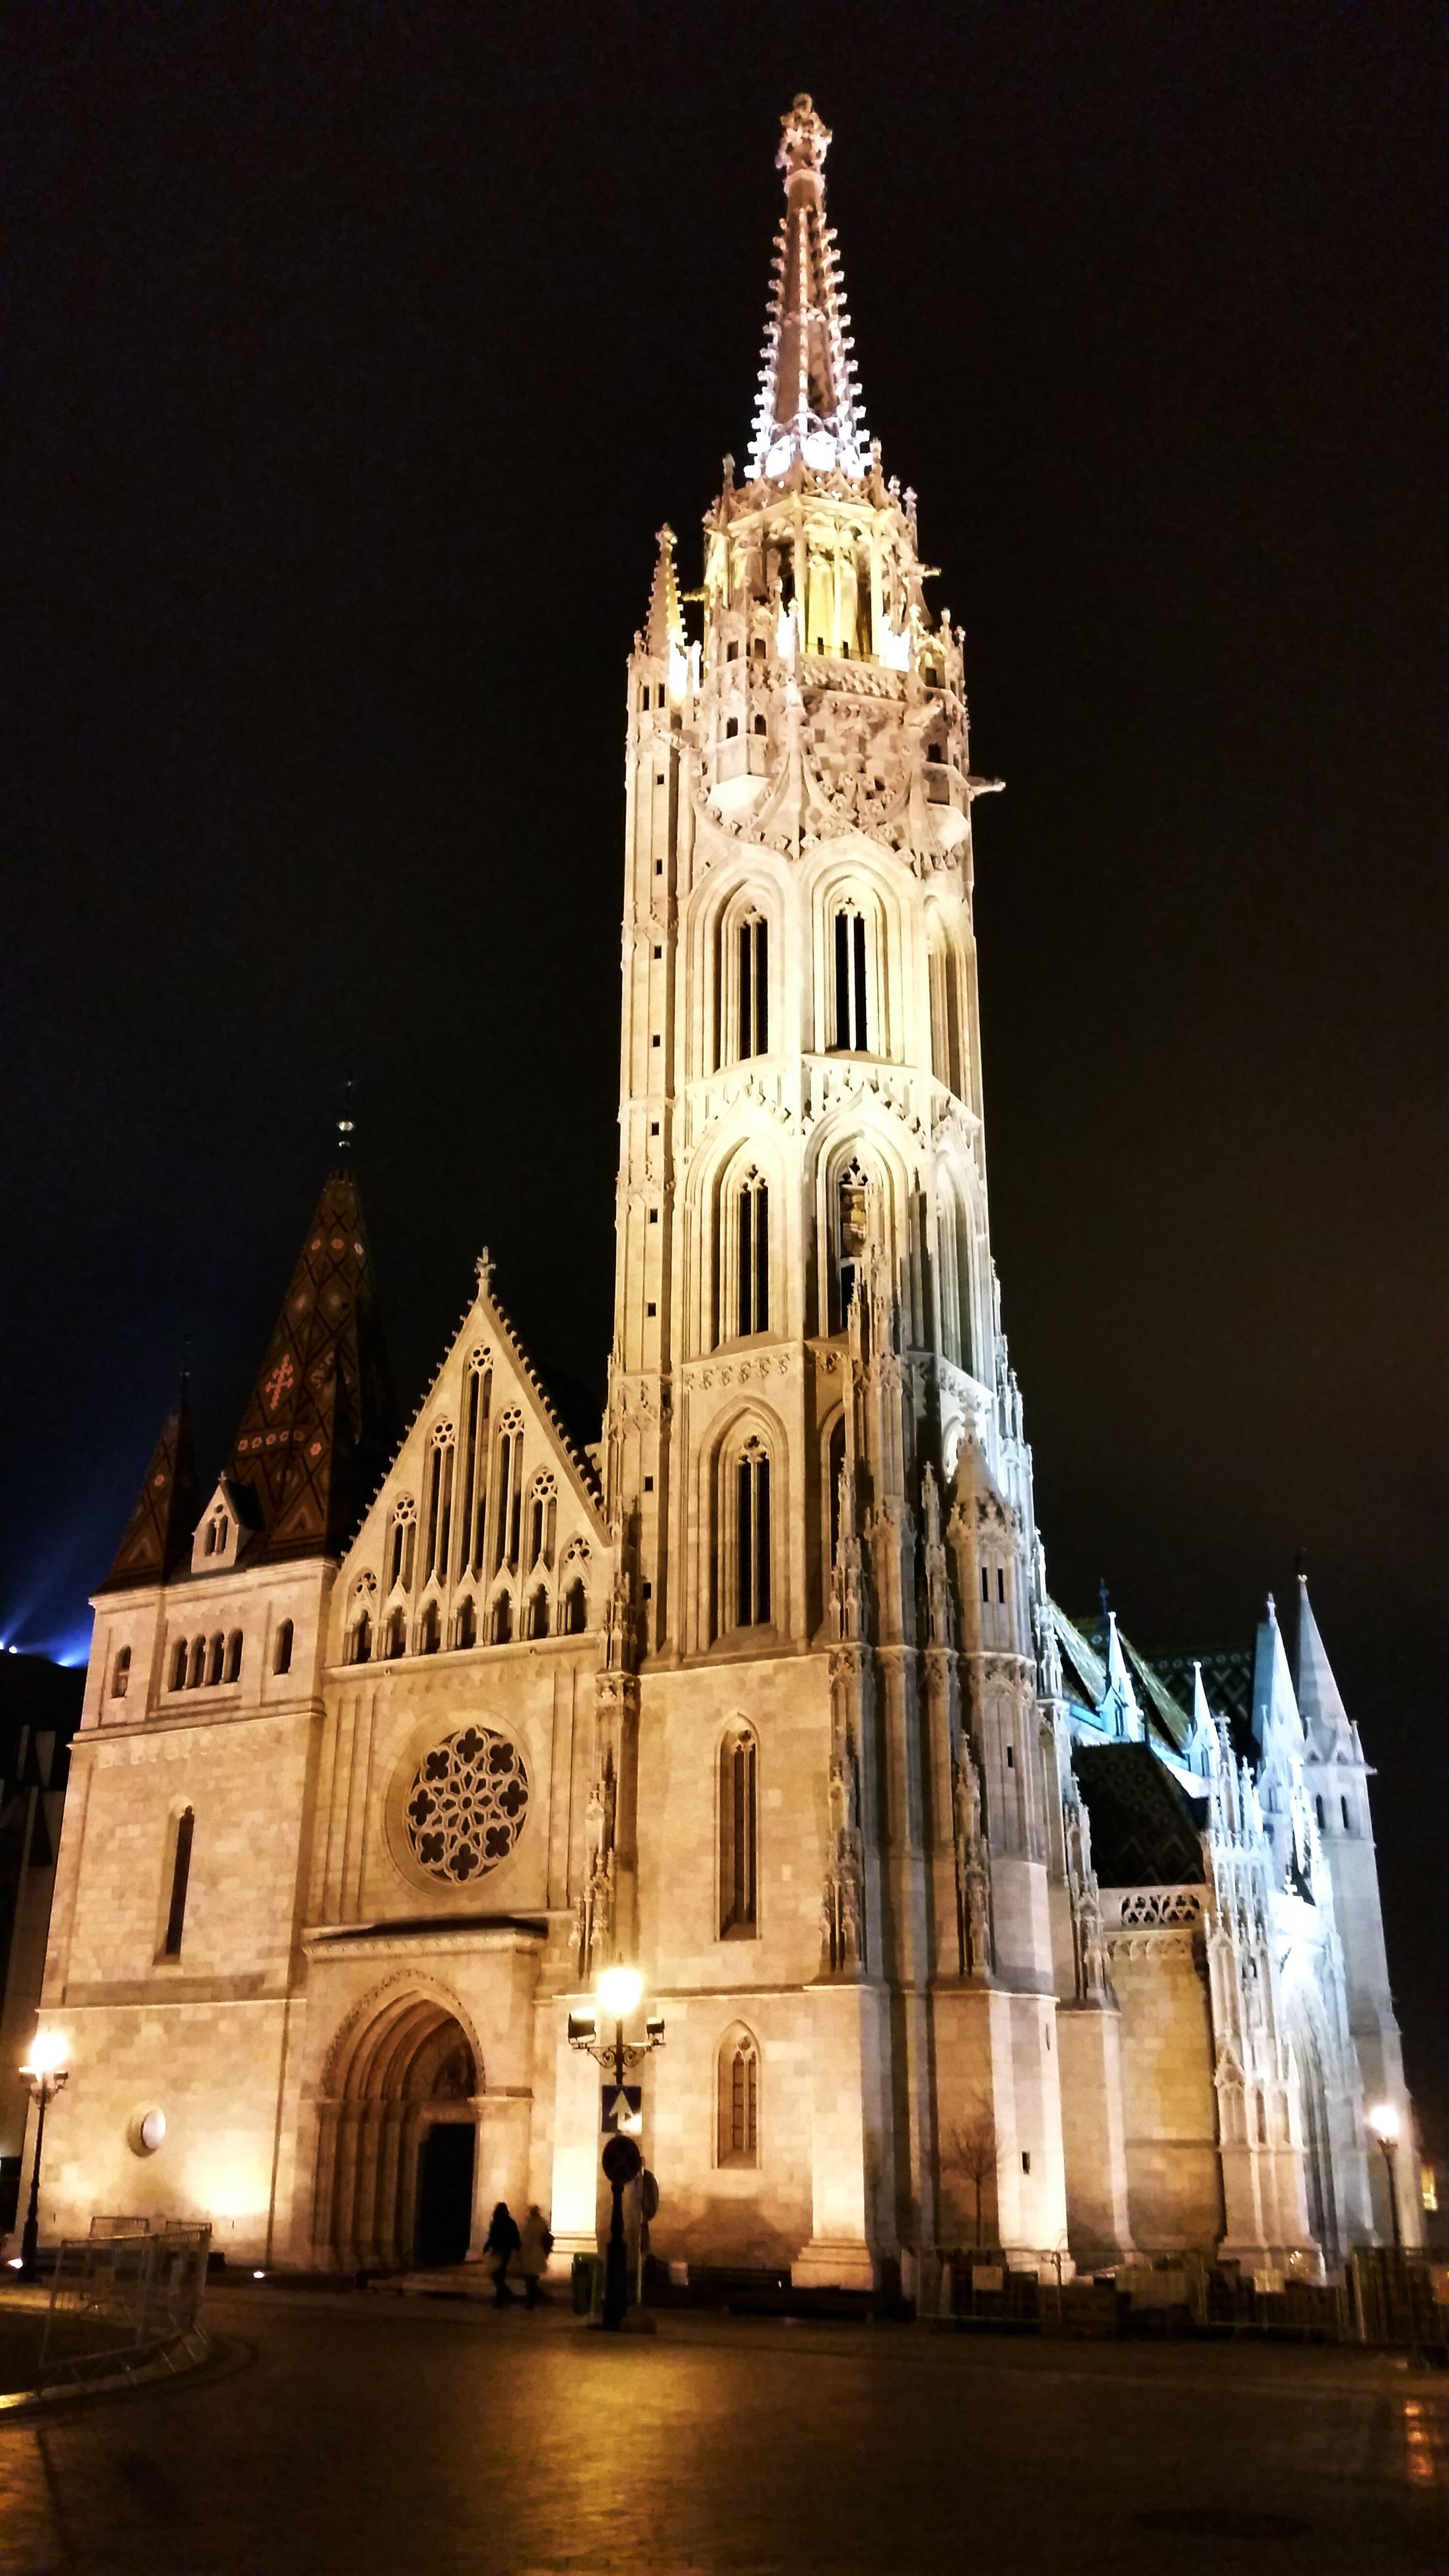 architecture, religion, place of worship, building exterior, built structure, spirituality, church, night, cathedral, famous place, illuminated, travel destinations, low angle view, tourism, history, travel, international landmark, facade